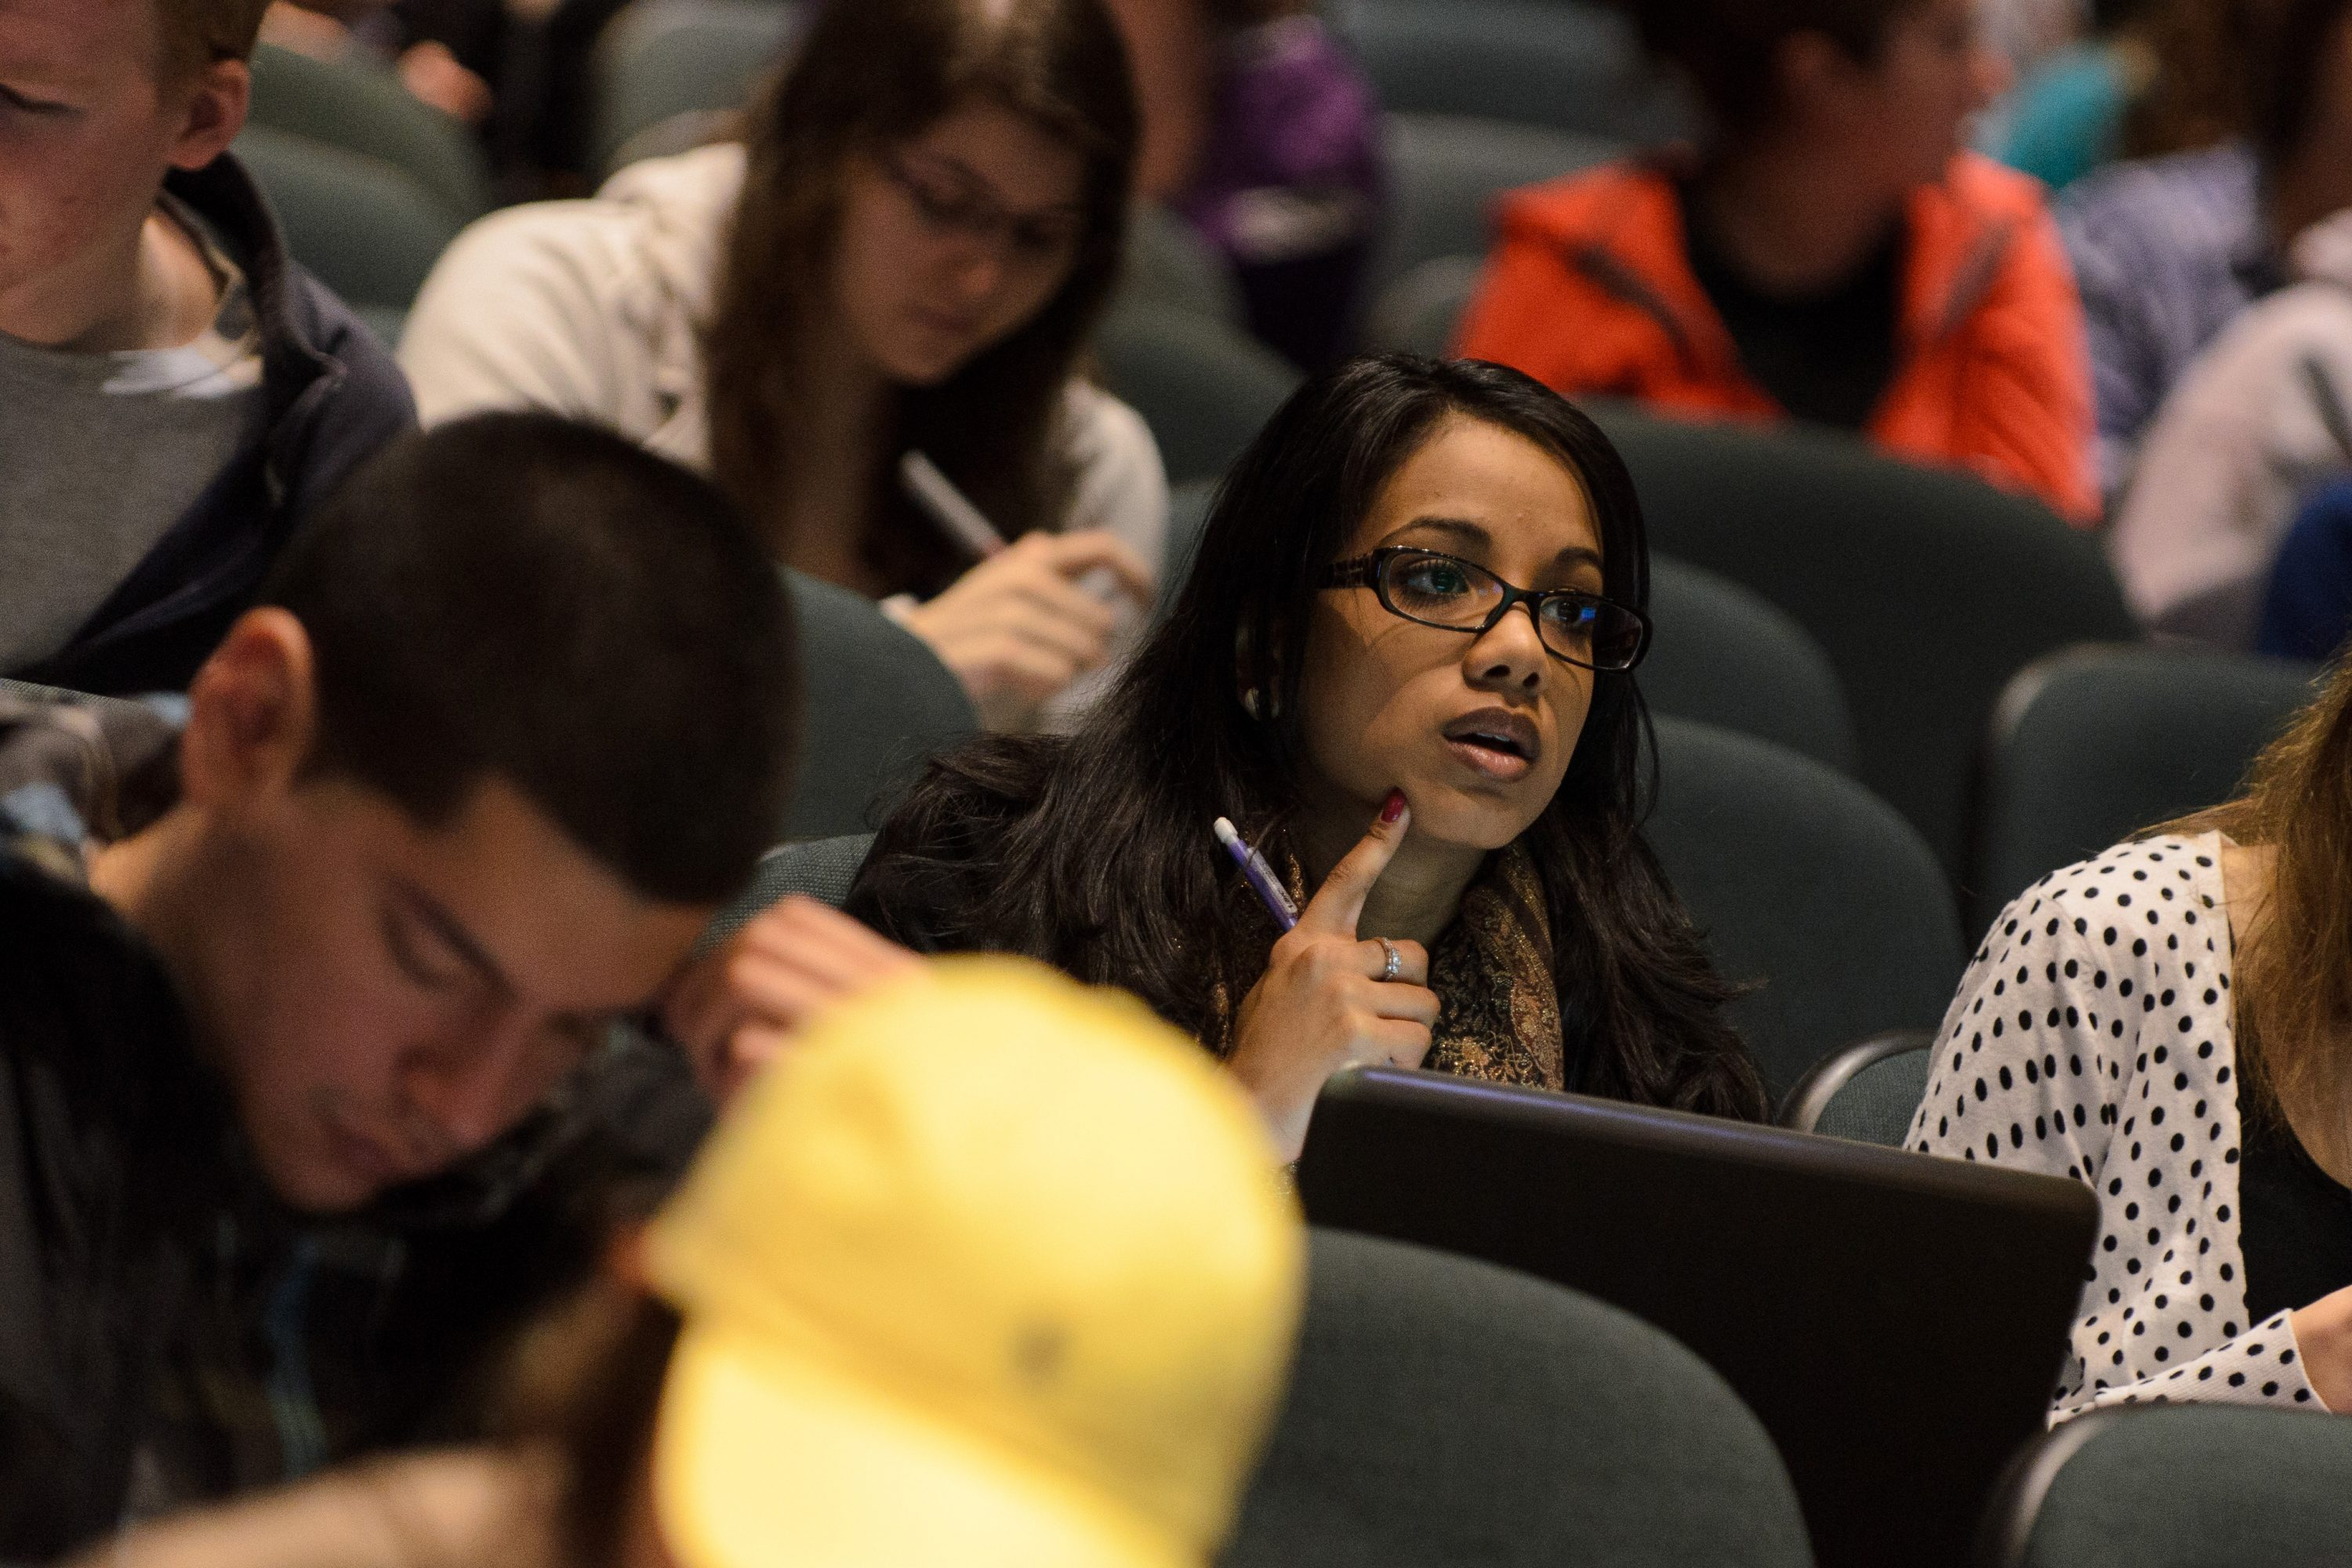 Students during a lecture in the Chemistry Building on March 13, 2013. (Sean Flynn/UConn Photo)